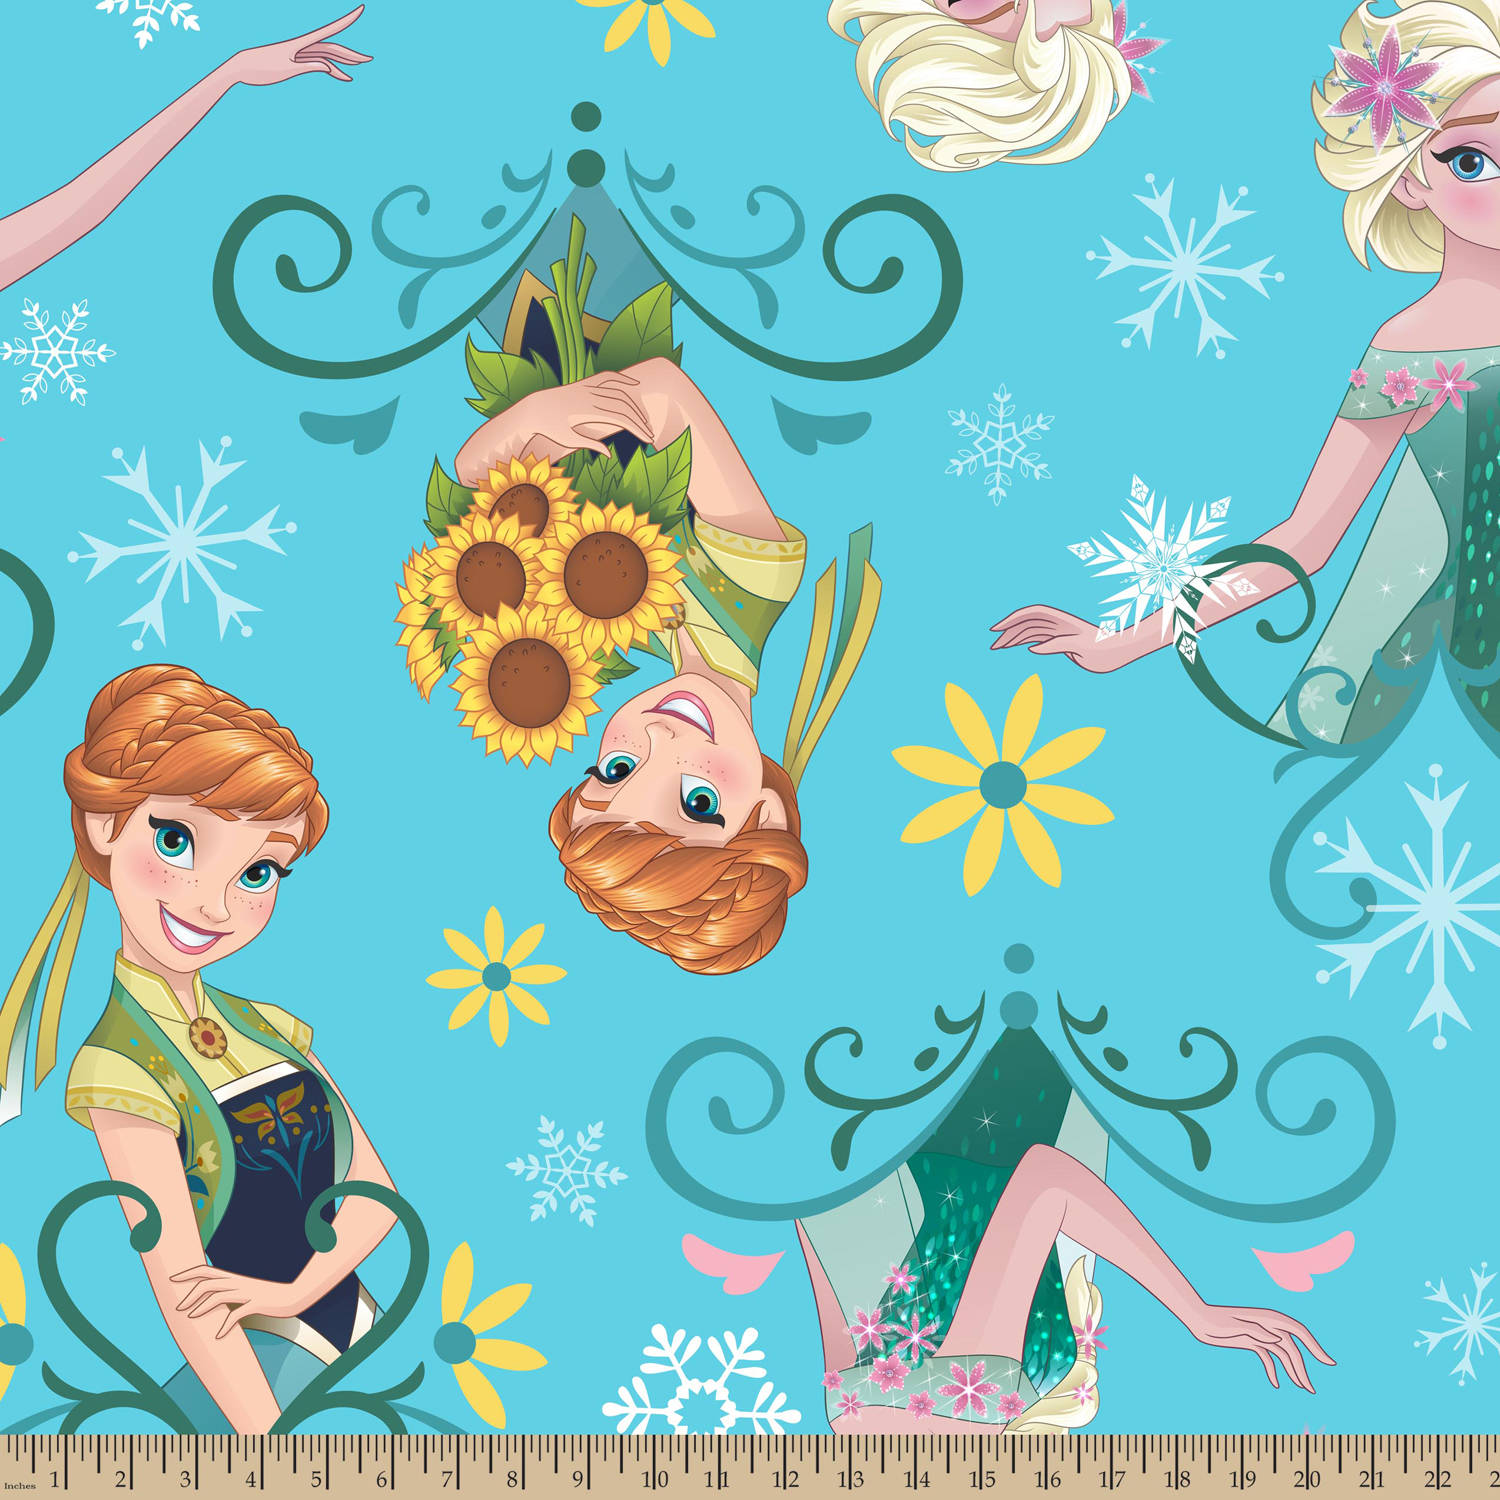 "Disney Sisters Frozen Fever Sunflowers Framed, Fleece, Aqua, 59/60"" Width, Fabric by the Yard"